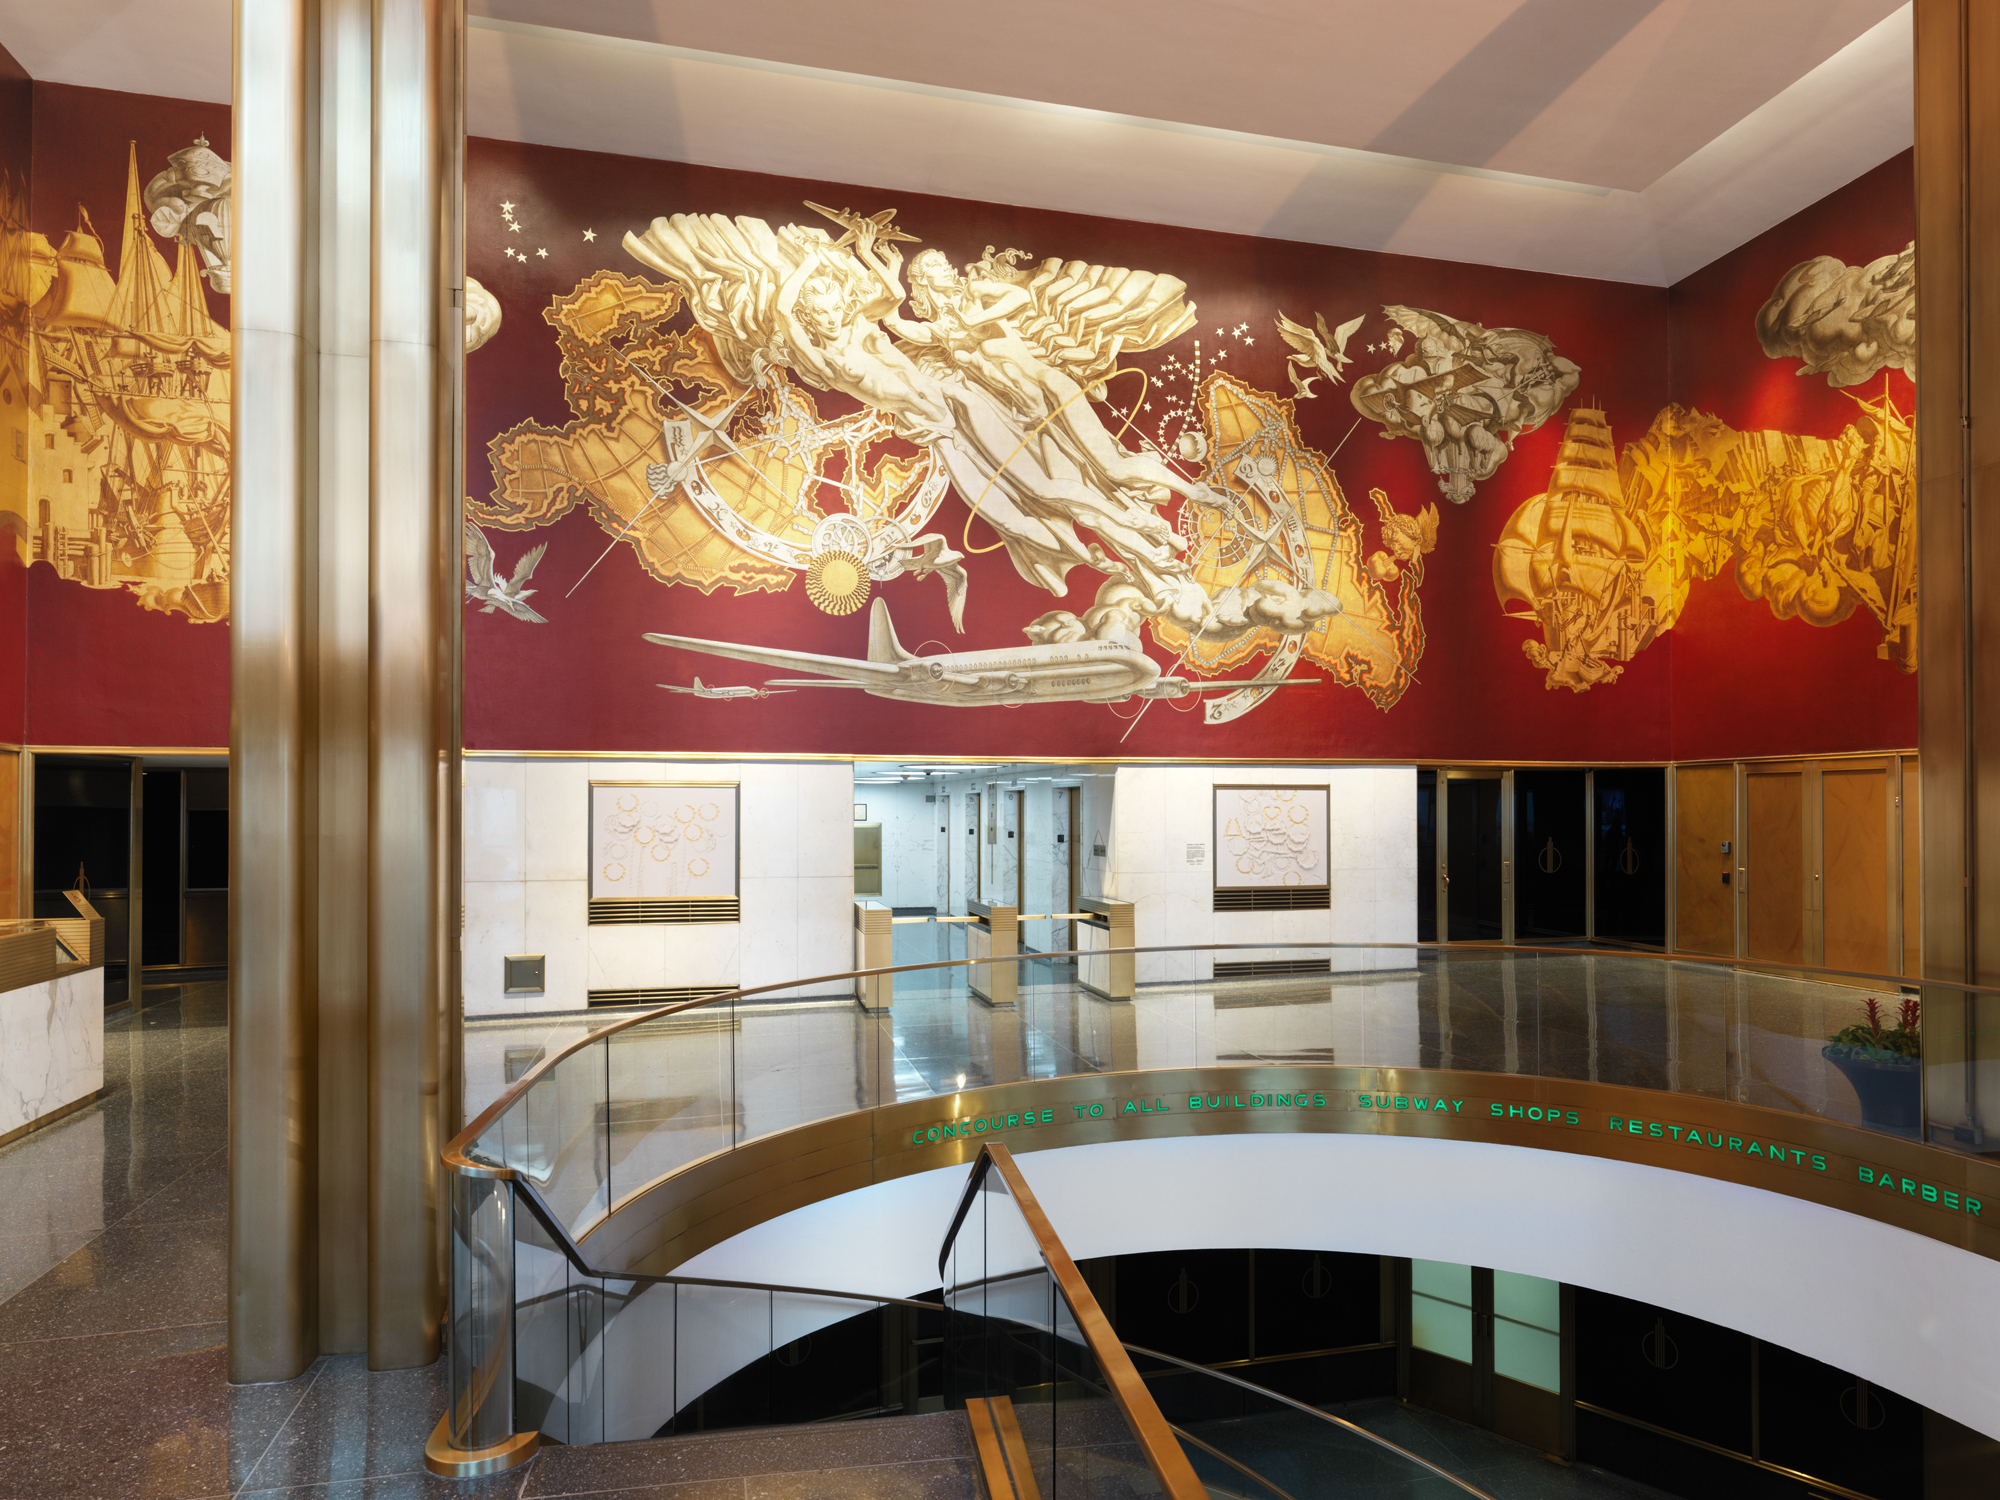 Vinyl murals in 10 Rockefeller Plaza. Photo by Dan Bradica, courtesy of Art Production Fund.